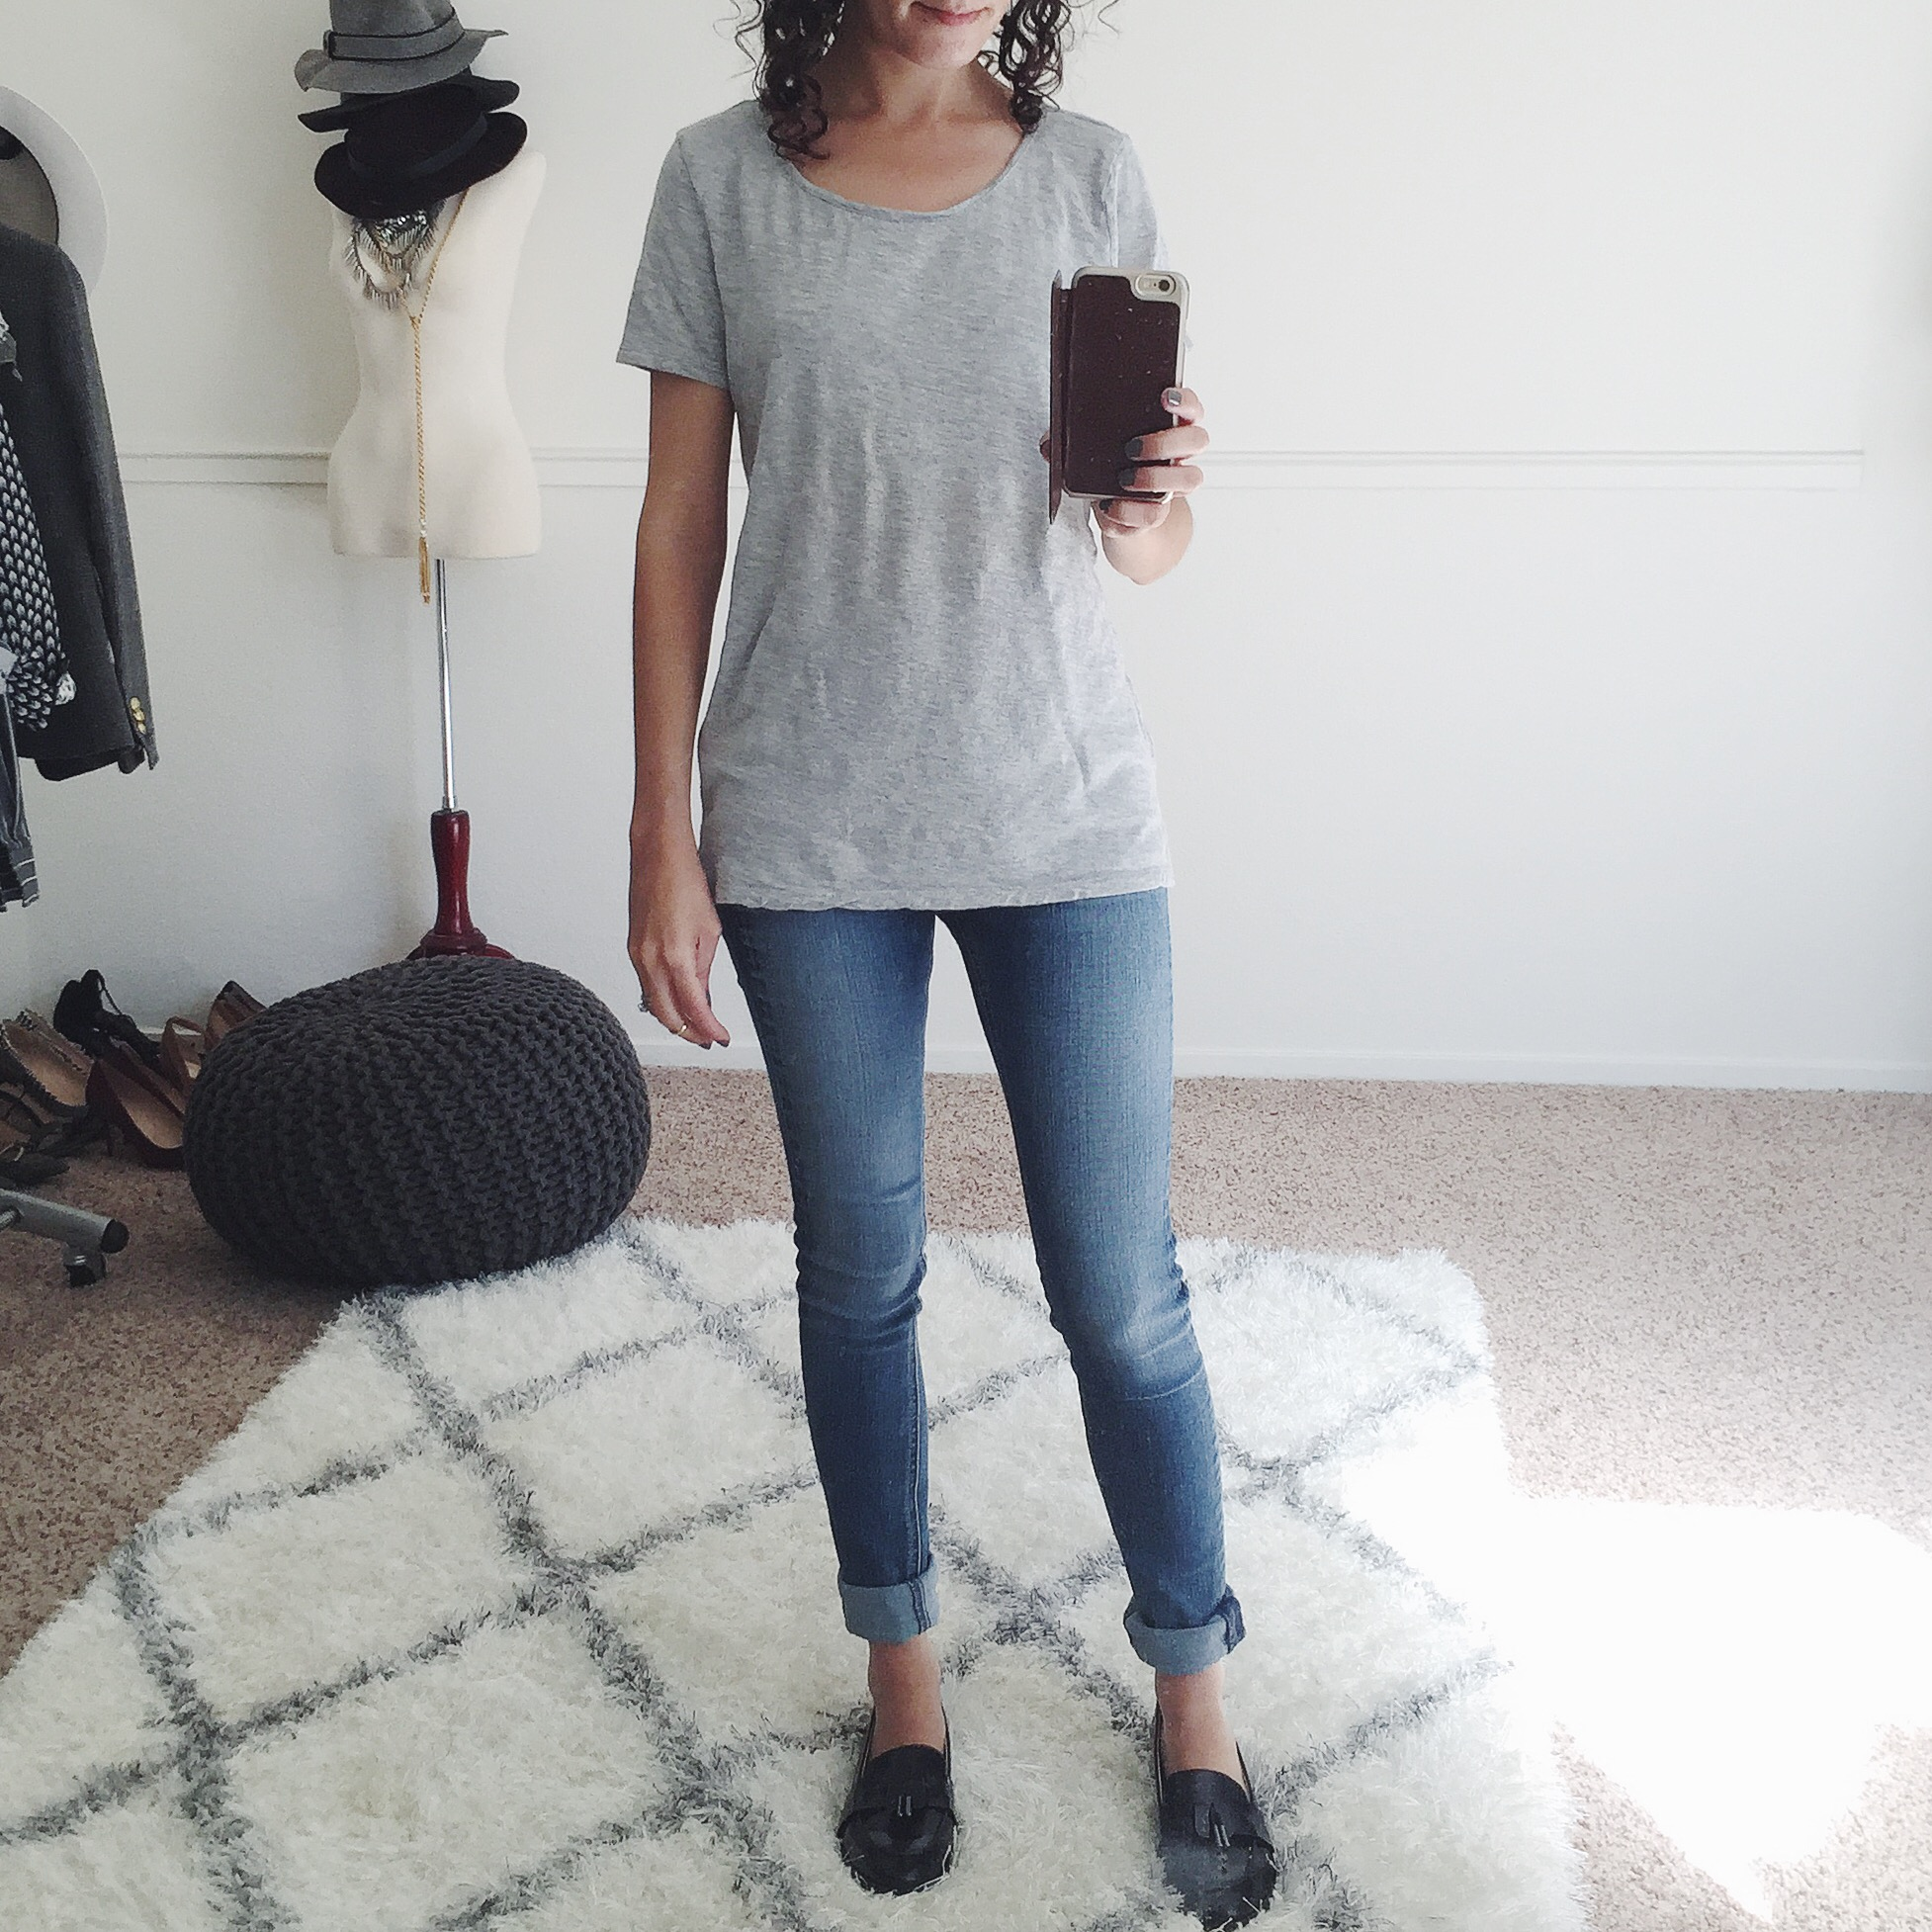 gap cotton modal tee shirt review